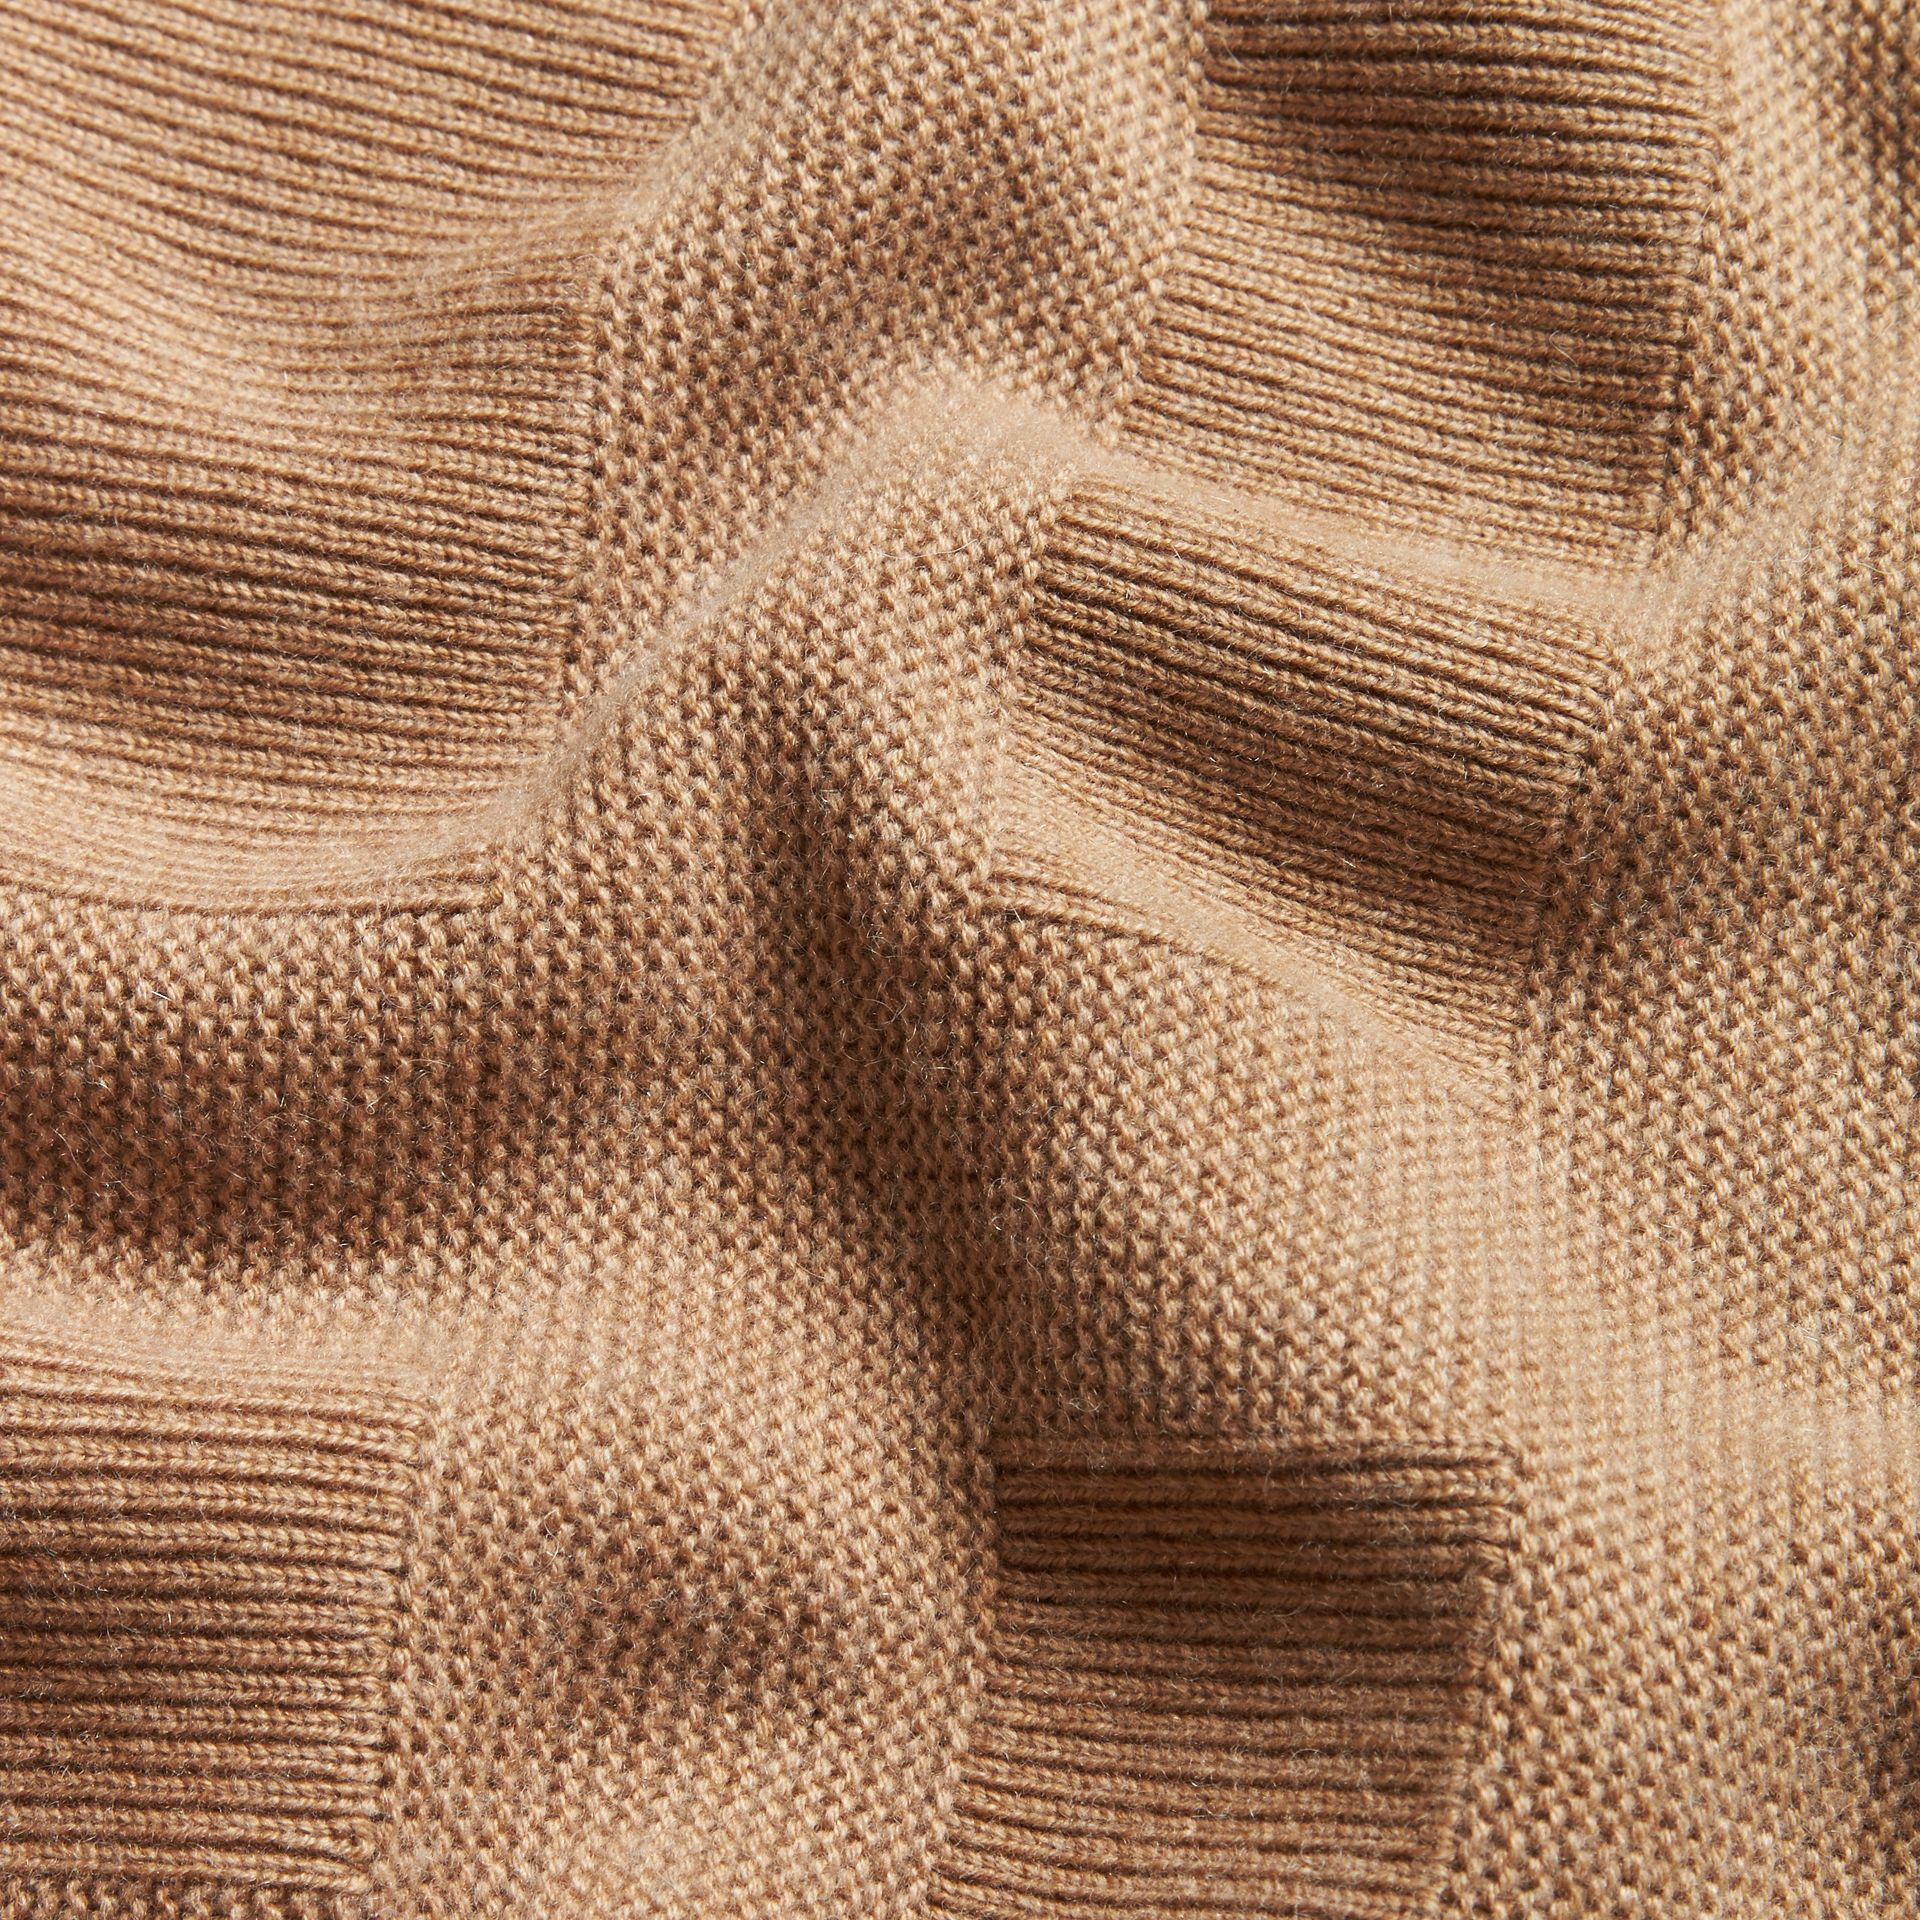 Camel Check-knit Wool Cashmere Sweater Camel - gallery image 2